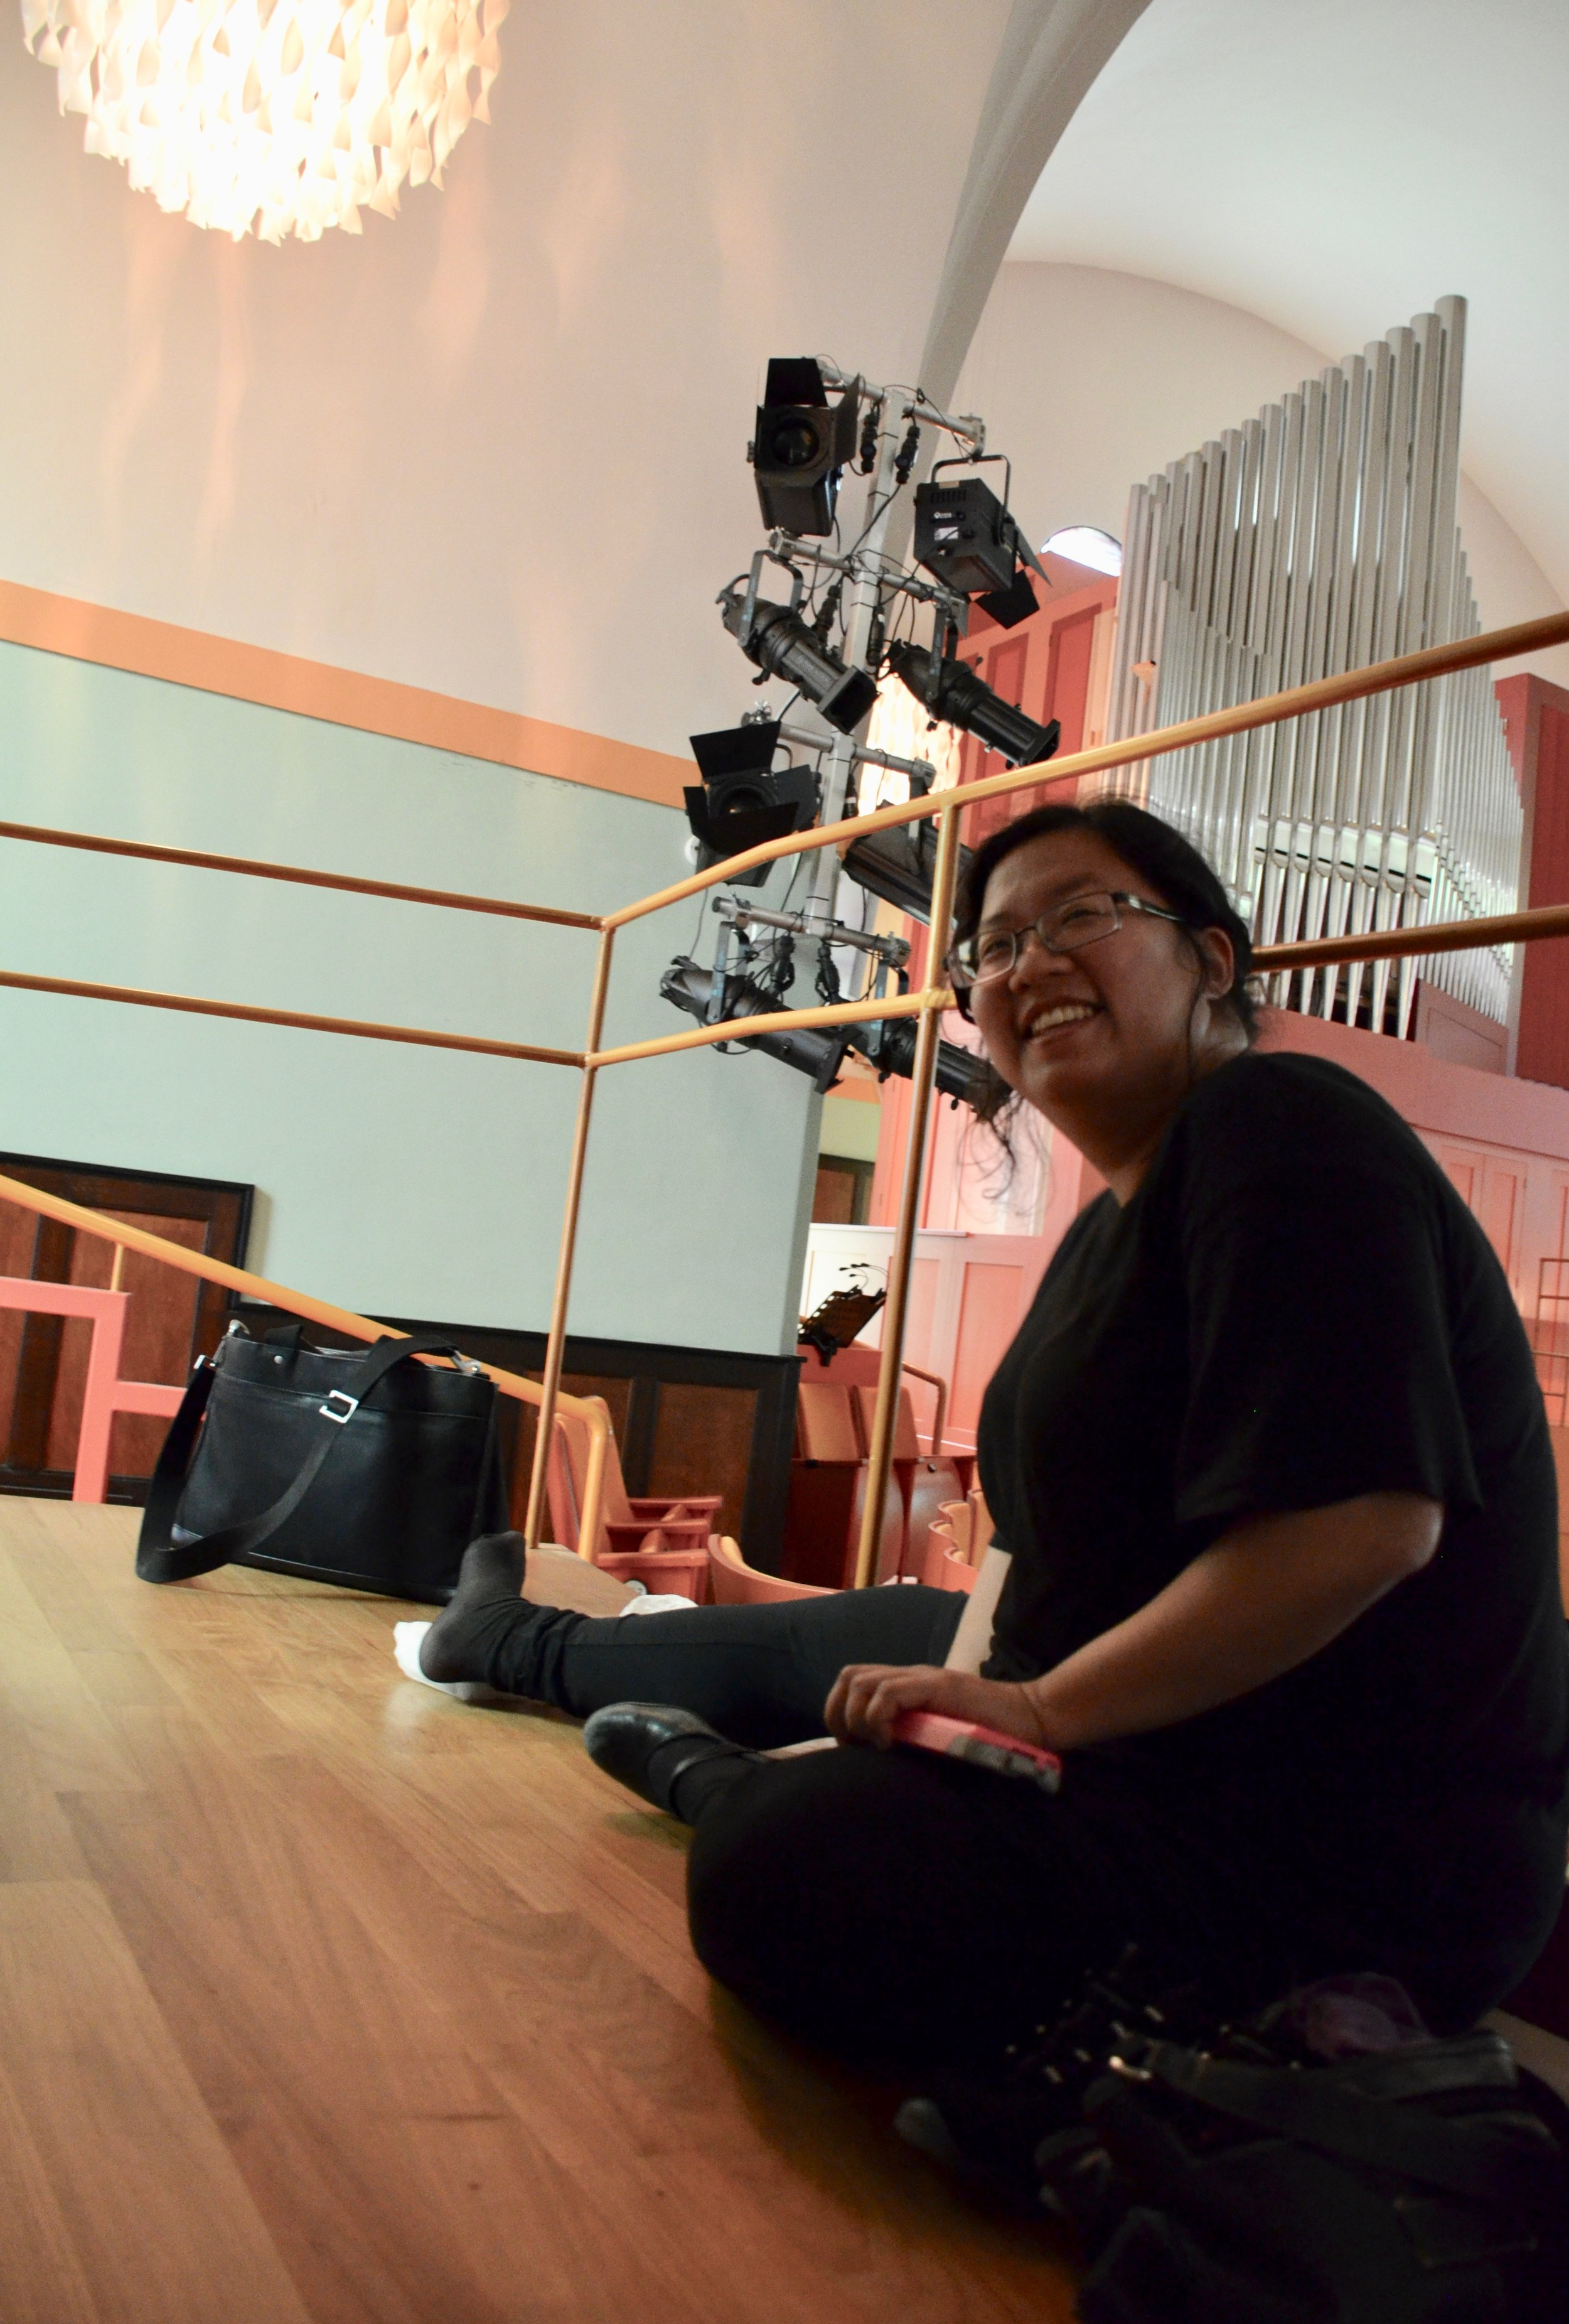 Despite a sprained ankle, Jennifer Hsiao is all smiles at Orgelpark. Boston Organ Studio.